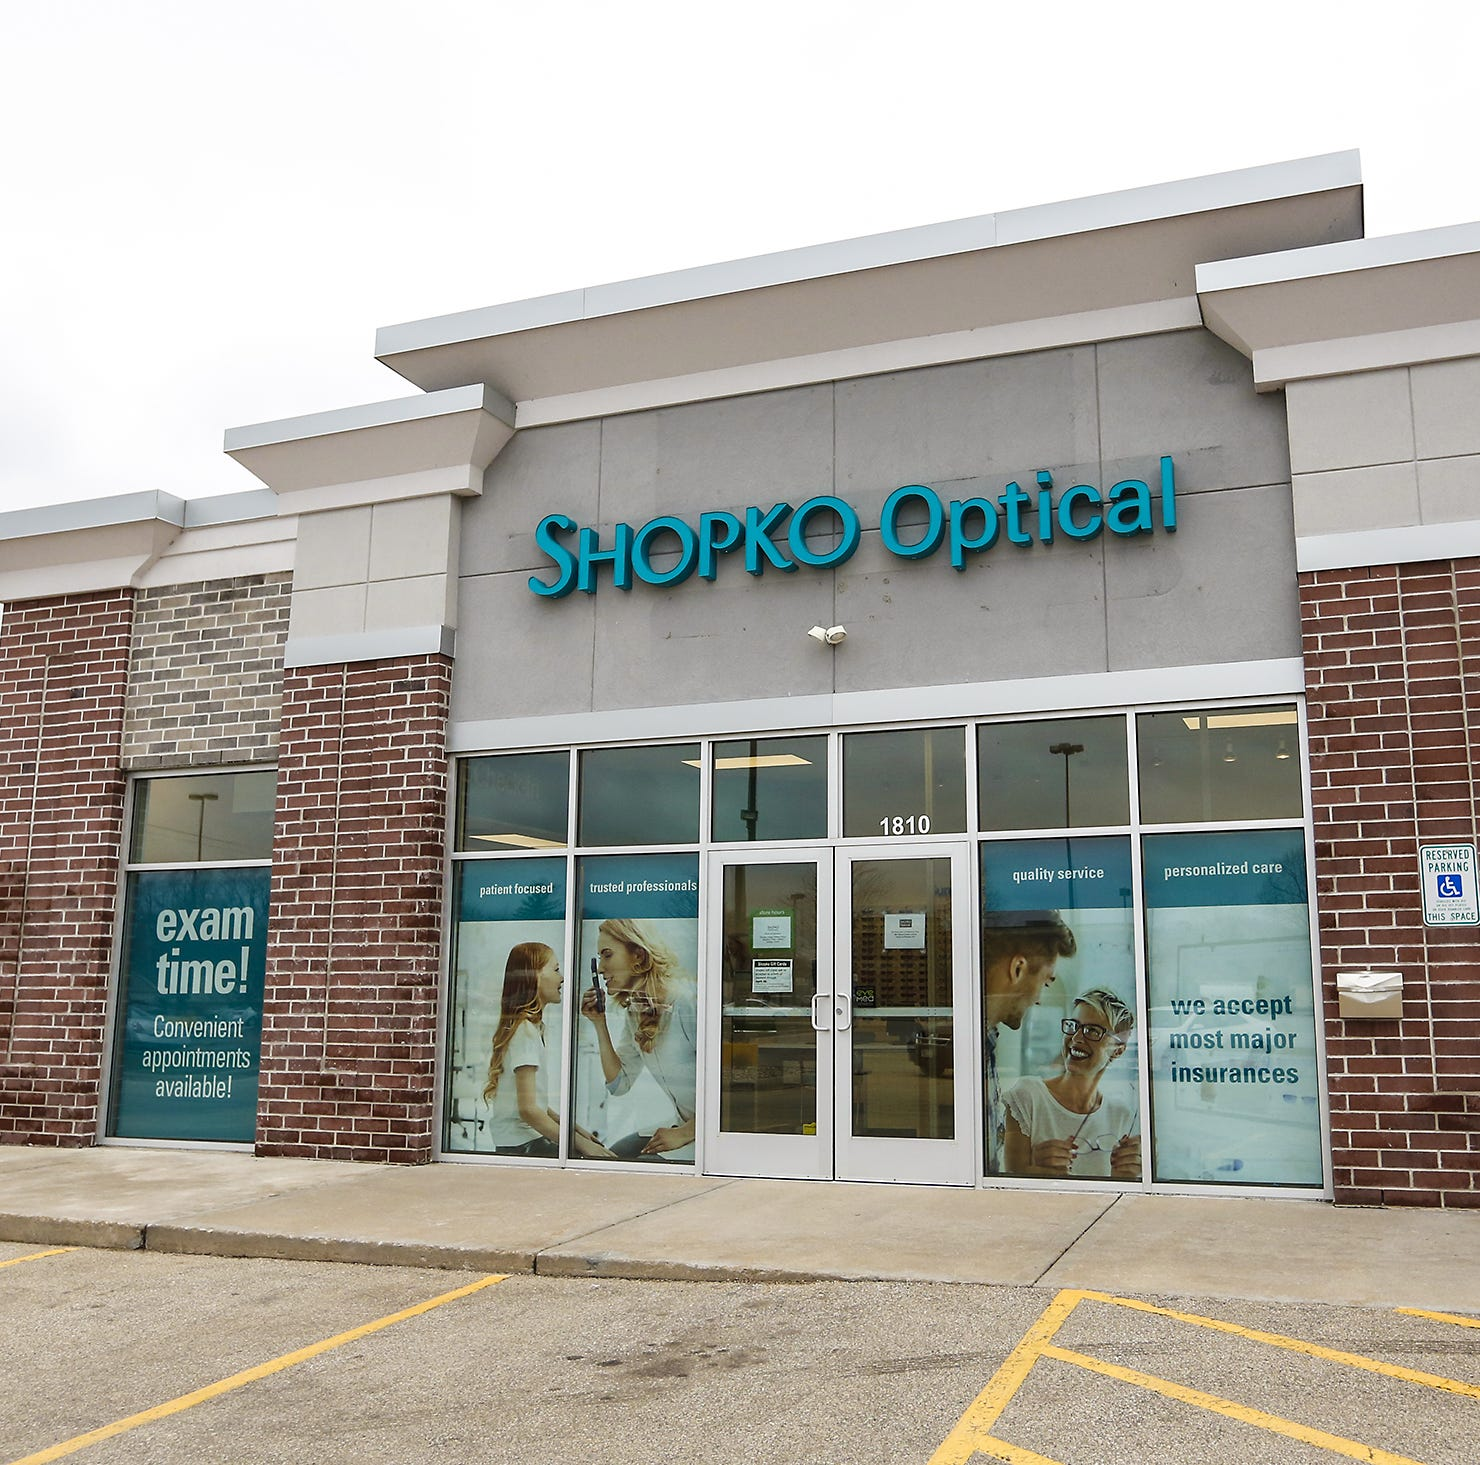 Shopko Optical sale done; email set up for info on new owners' plan to relocate 80 stores